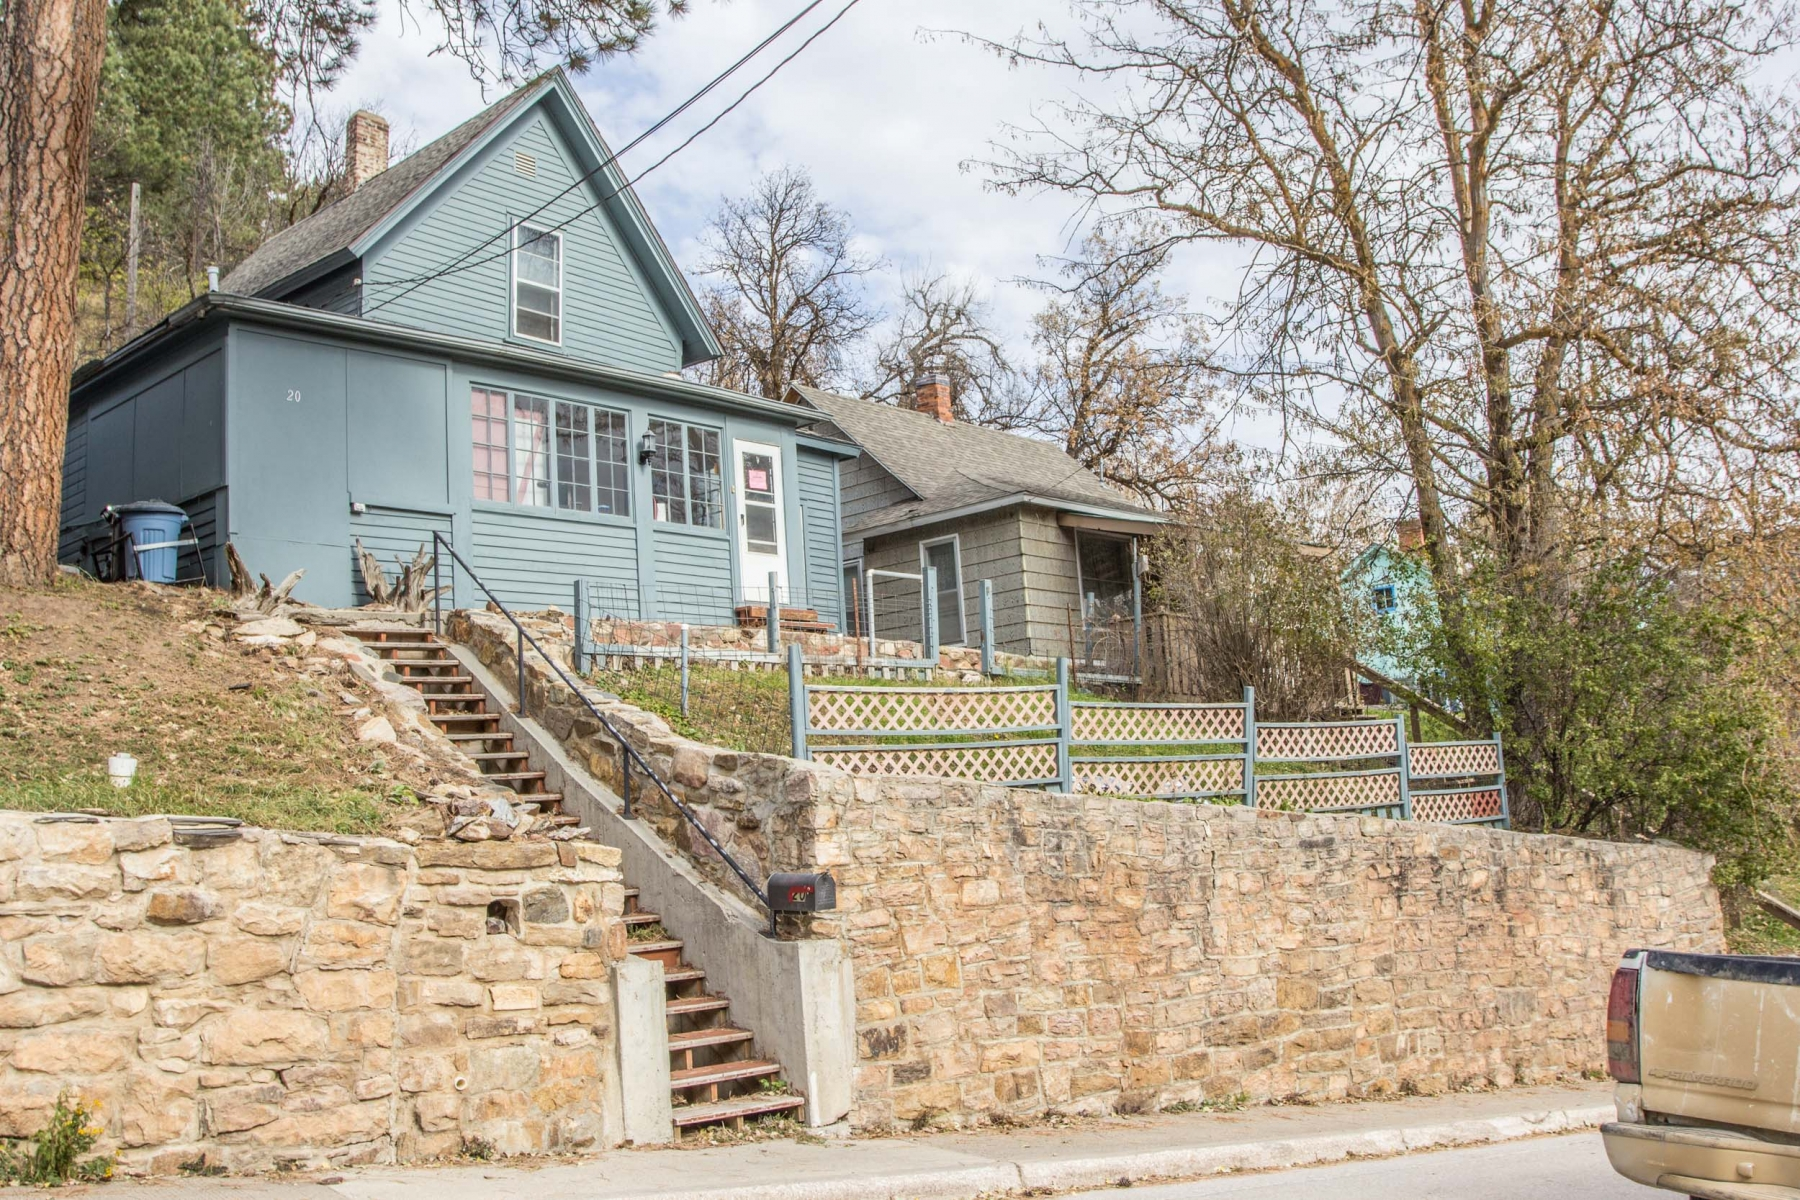 2 Bedroom Deadwood Home Near Main Street